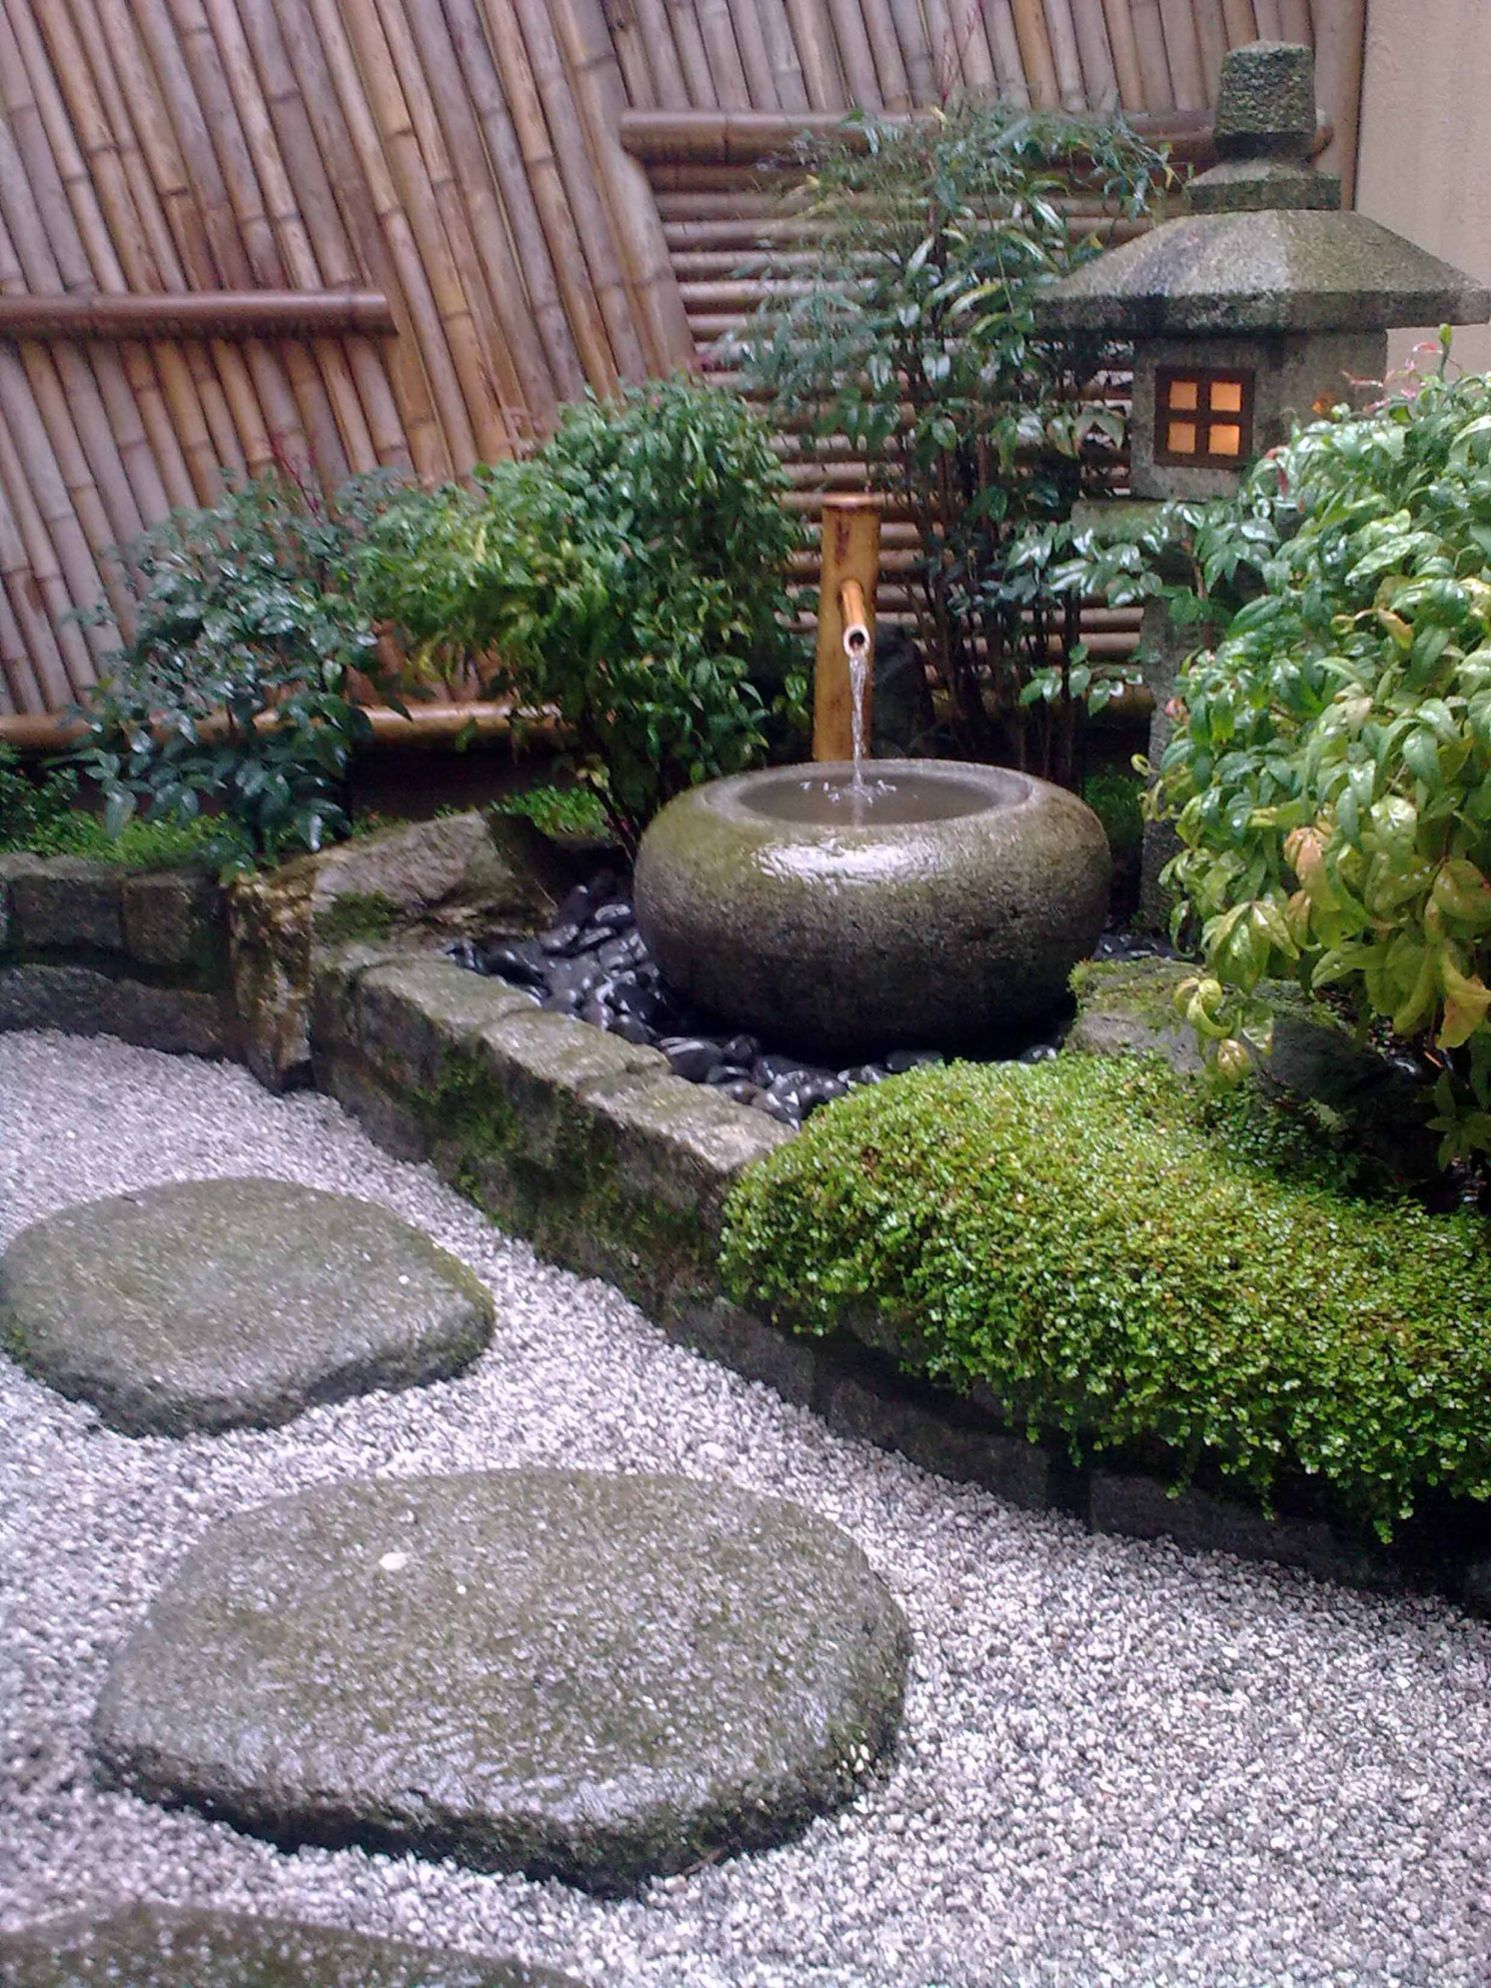 top 10 beautiful zen garden ideas for backyard small on layouts and landscaping small backyards ideas id=64821